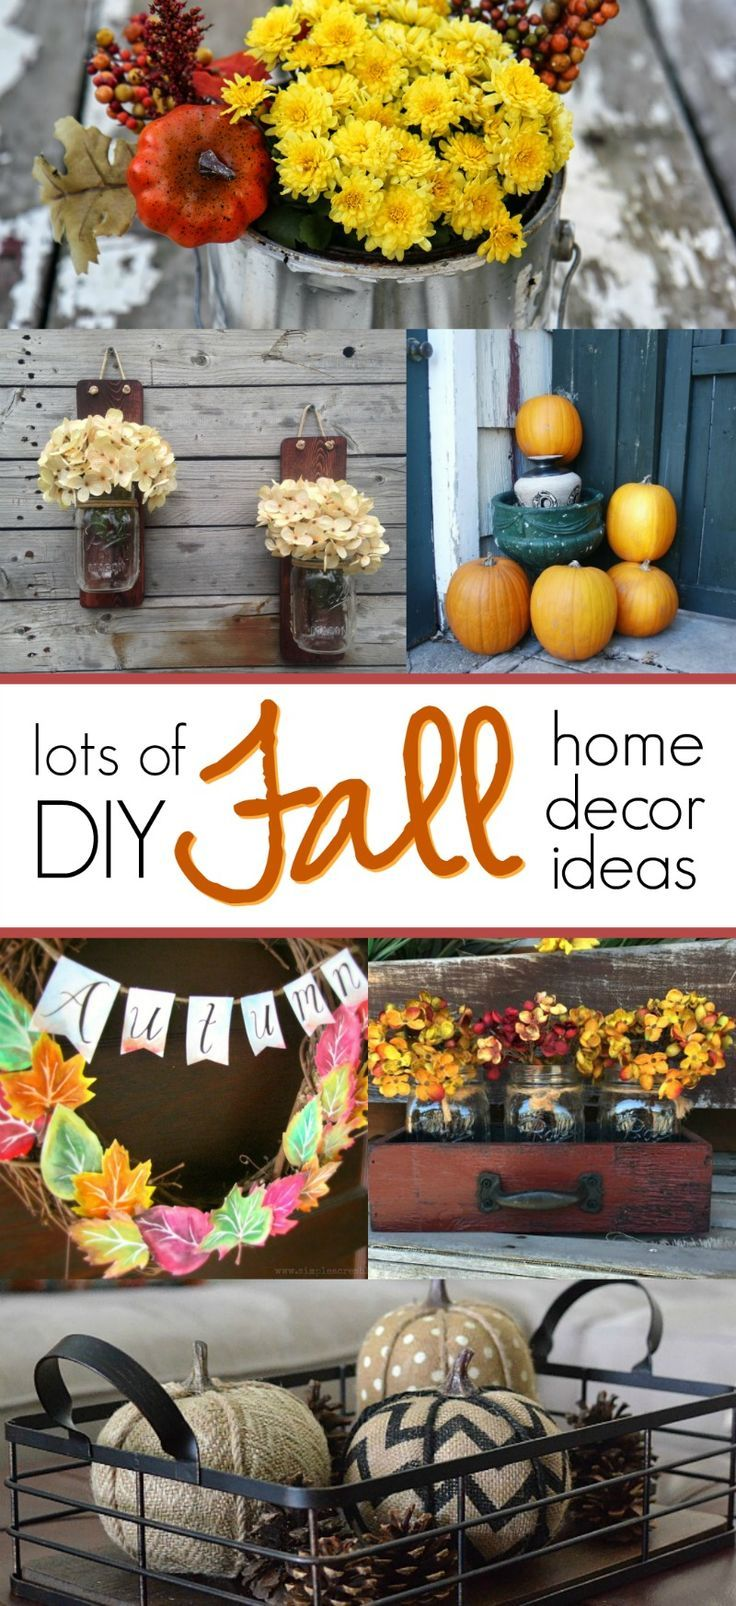 15 DIY Fall Home Decor Ideas To Try   Love These Autumn Inspired Ideas!